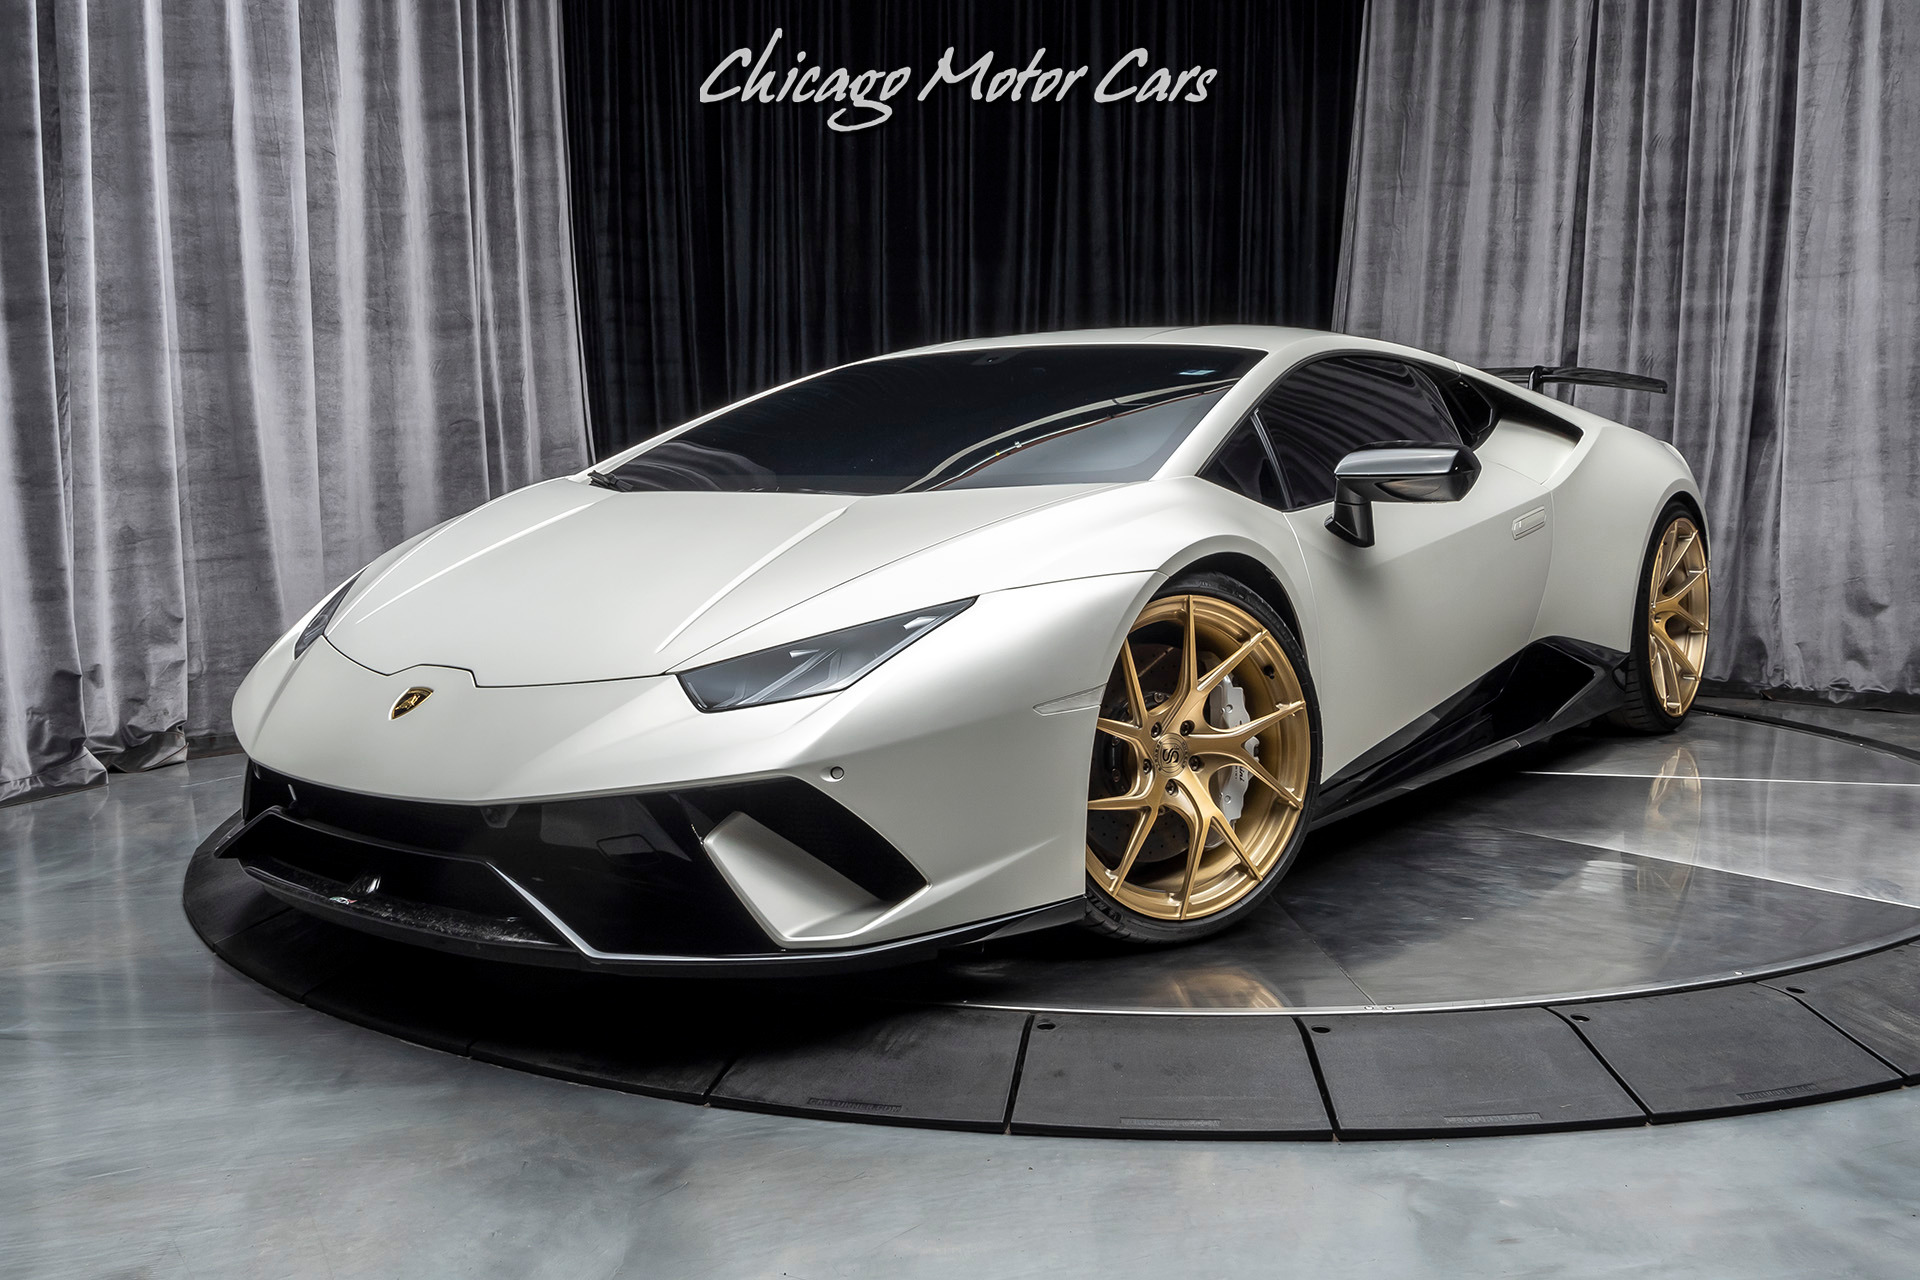 Used-2018-Lamborghini-Huracan-LP640-4-Performante-VF-SUPERCHARGED-Factory-Matte-White-High-MSRP